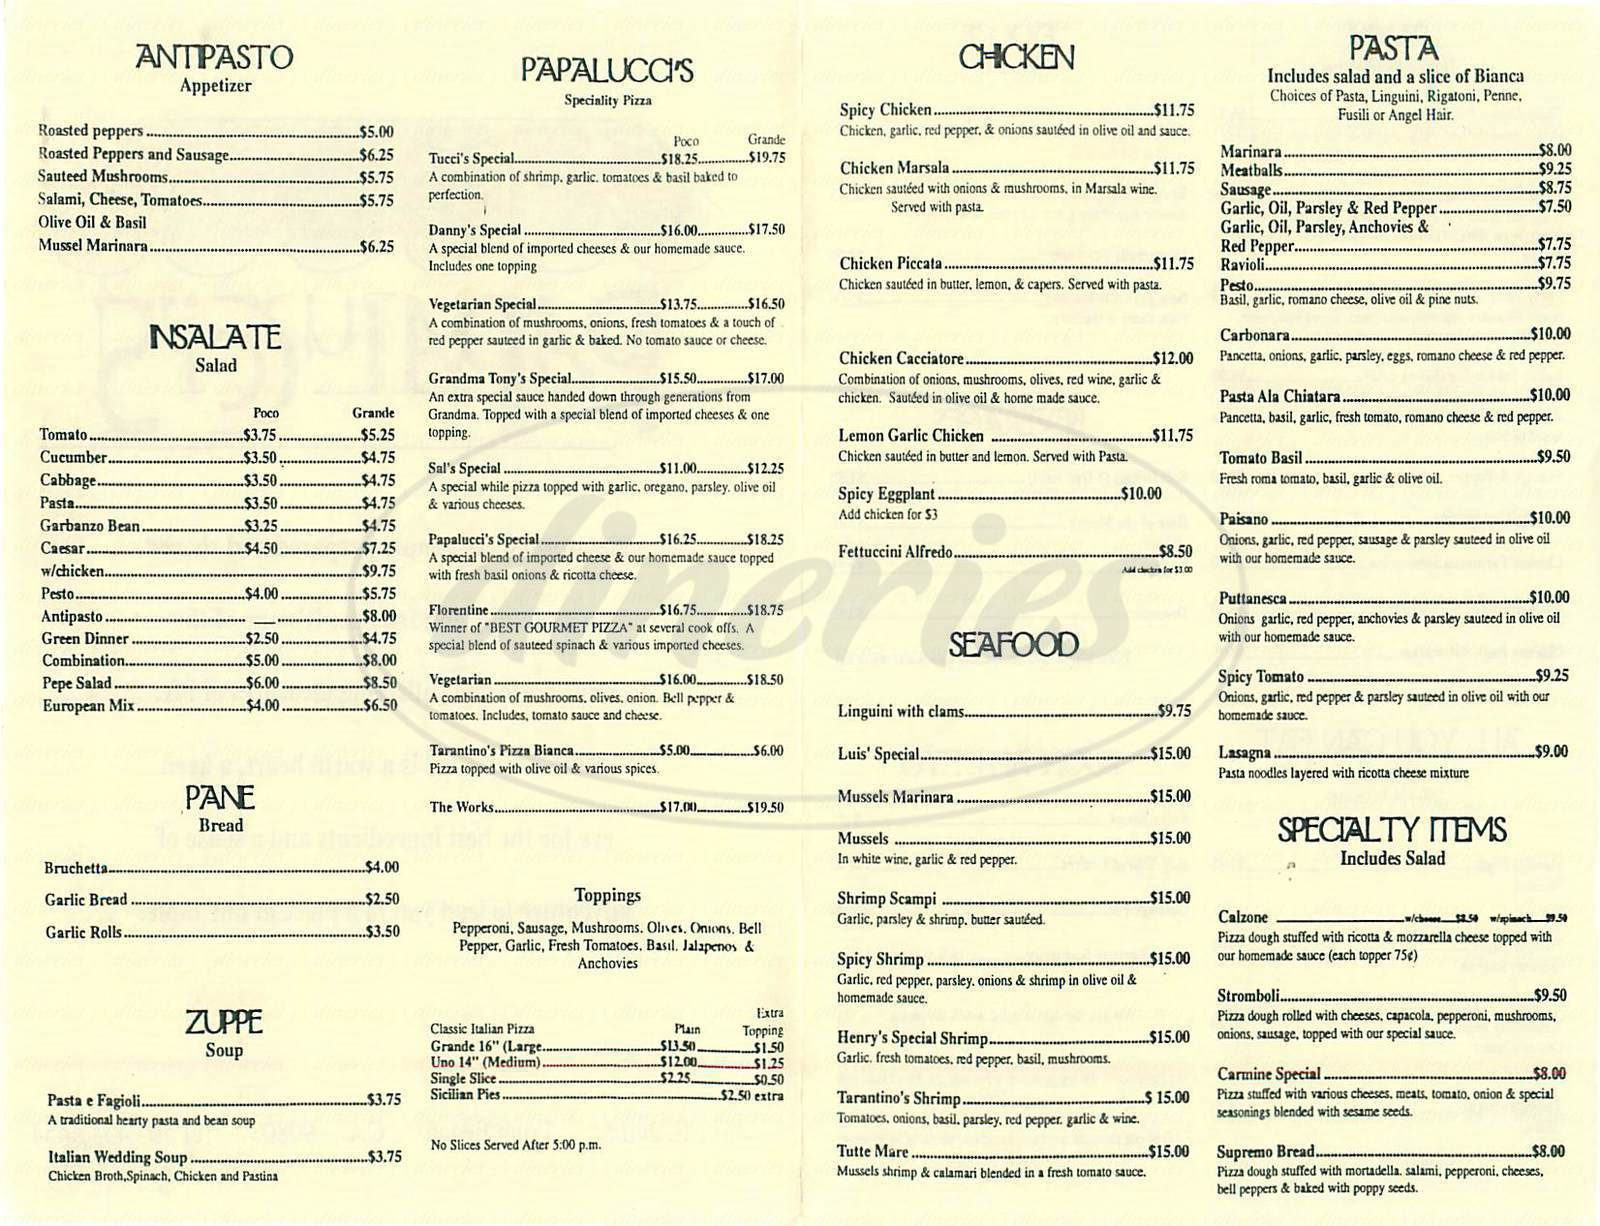 menu for Papalucci's